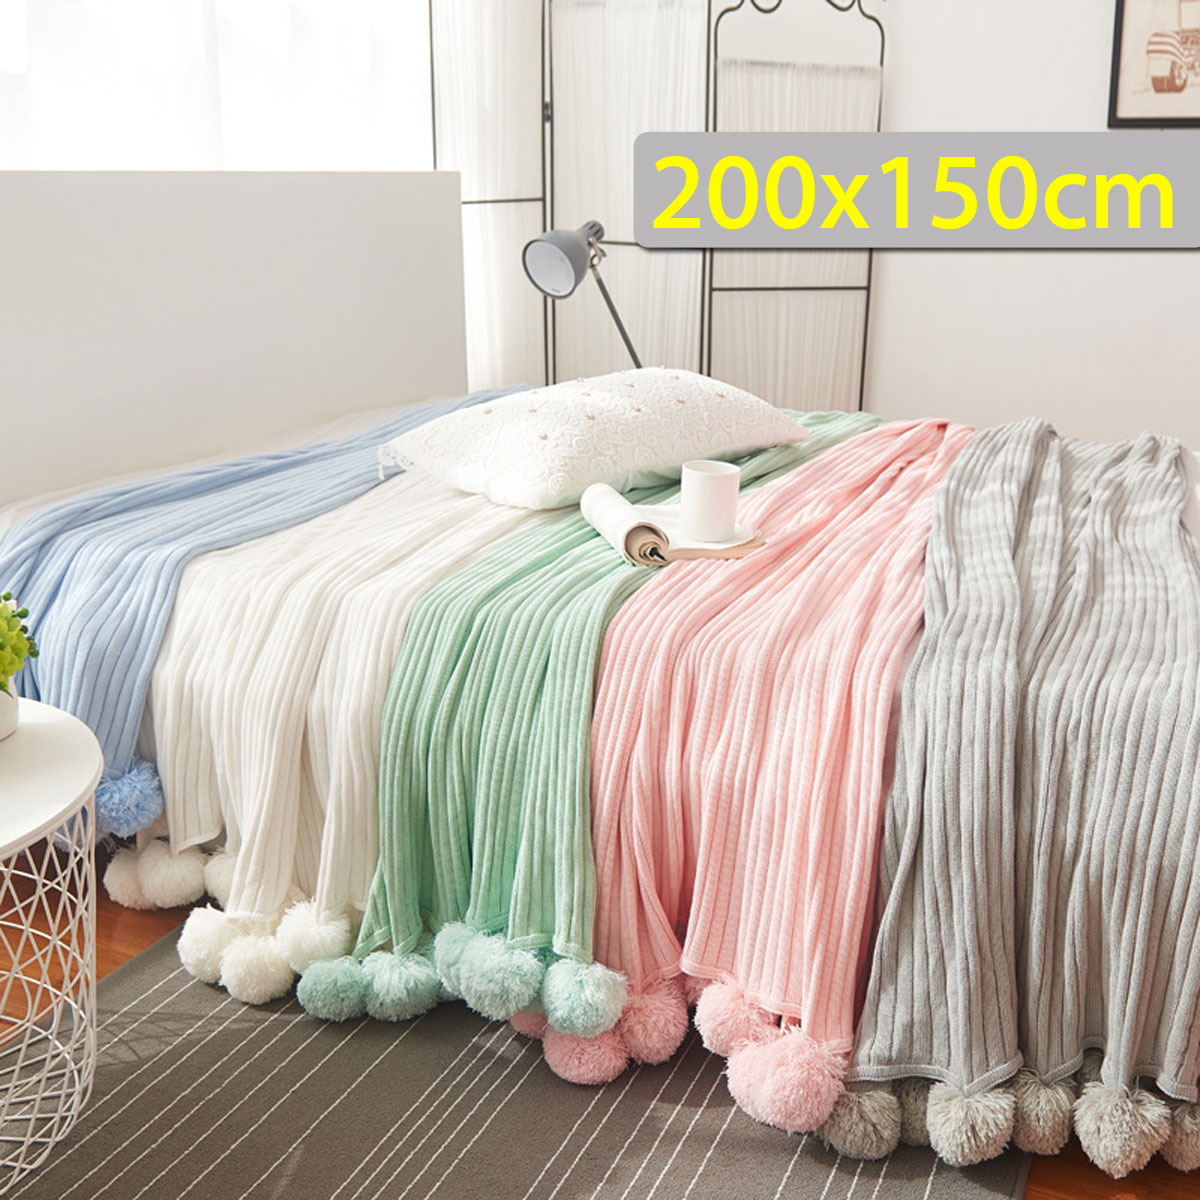 150x200cm Soft Knitted Crochet Throw Blanket Long Pile Pom Super Warm Bed Sofa Cover Decor